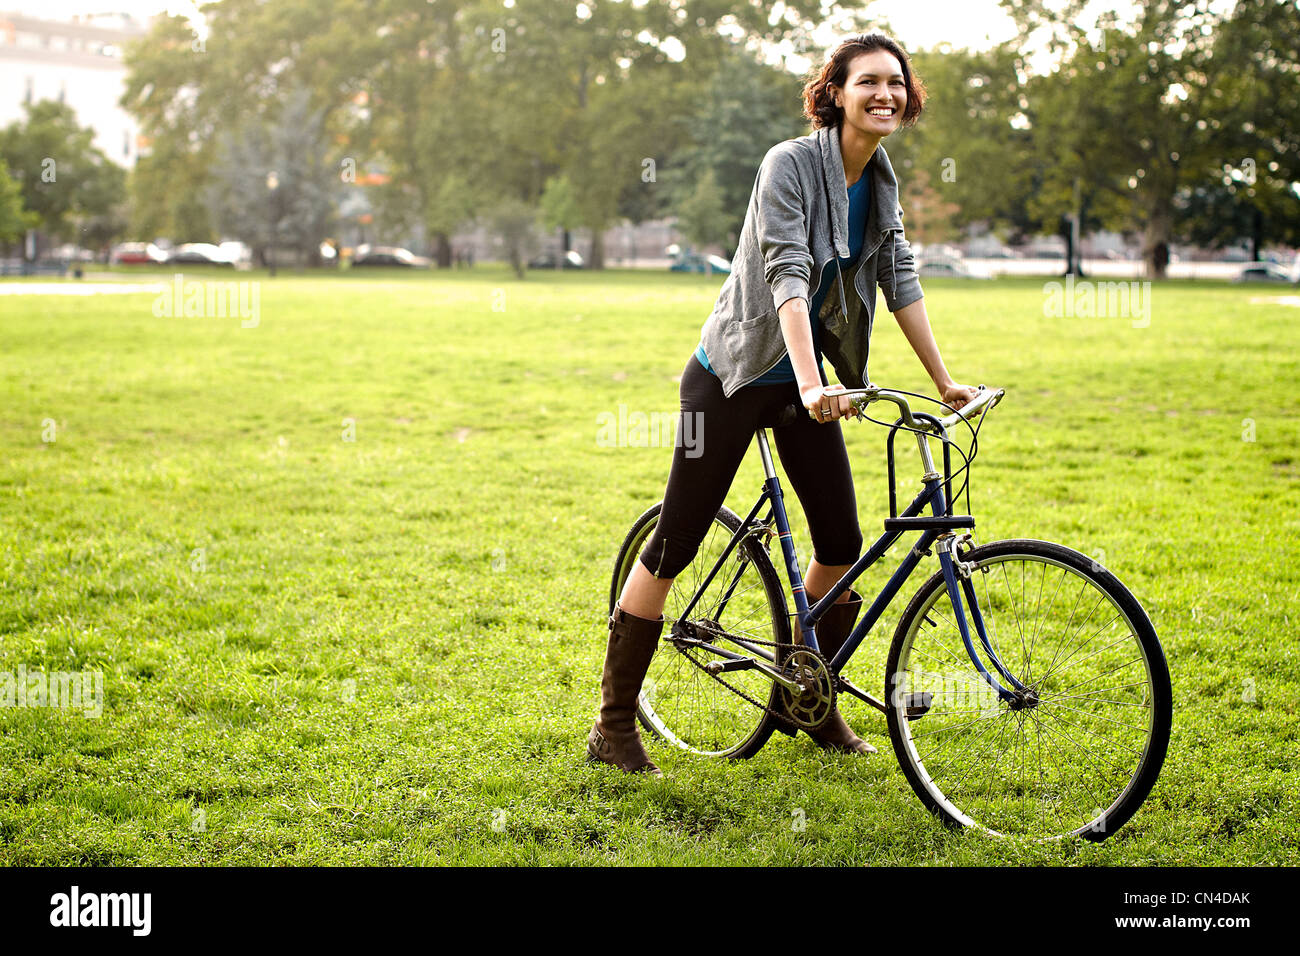 Young woman on bicycle in park - Stock Image